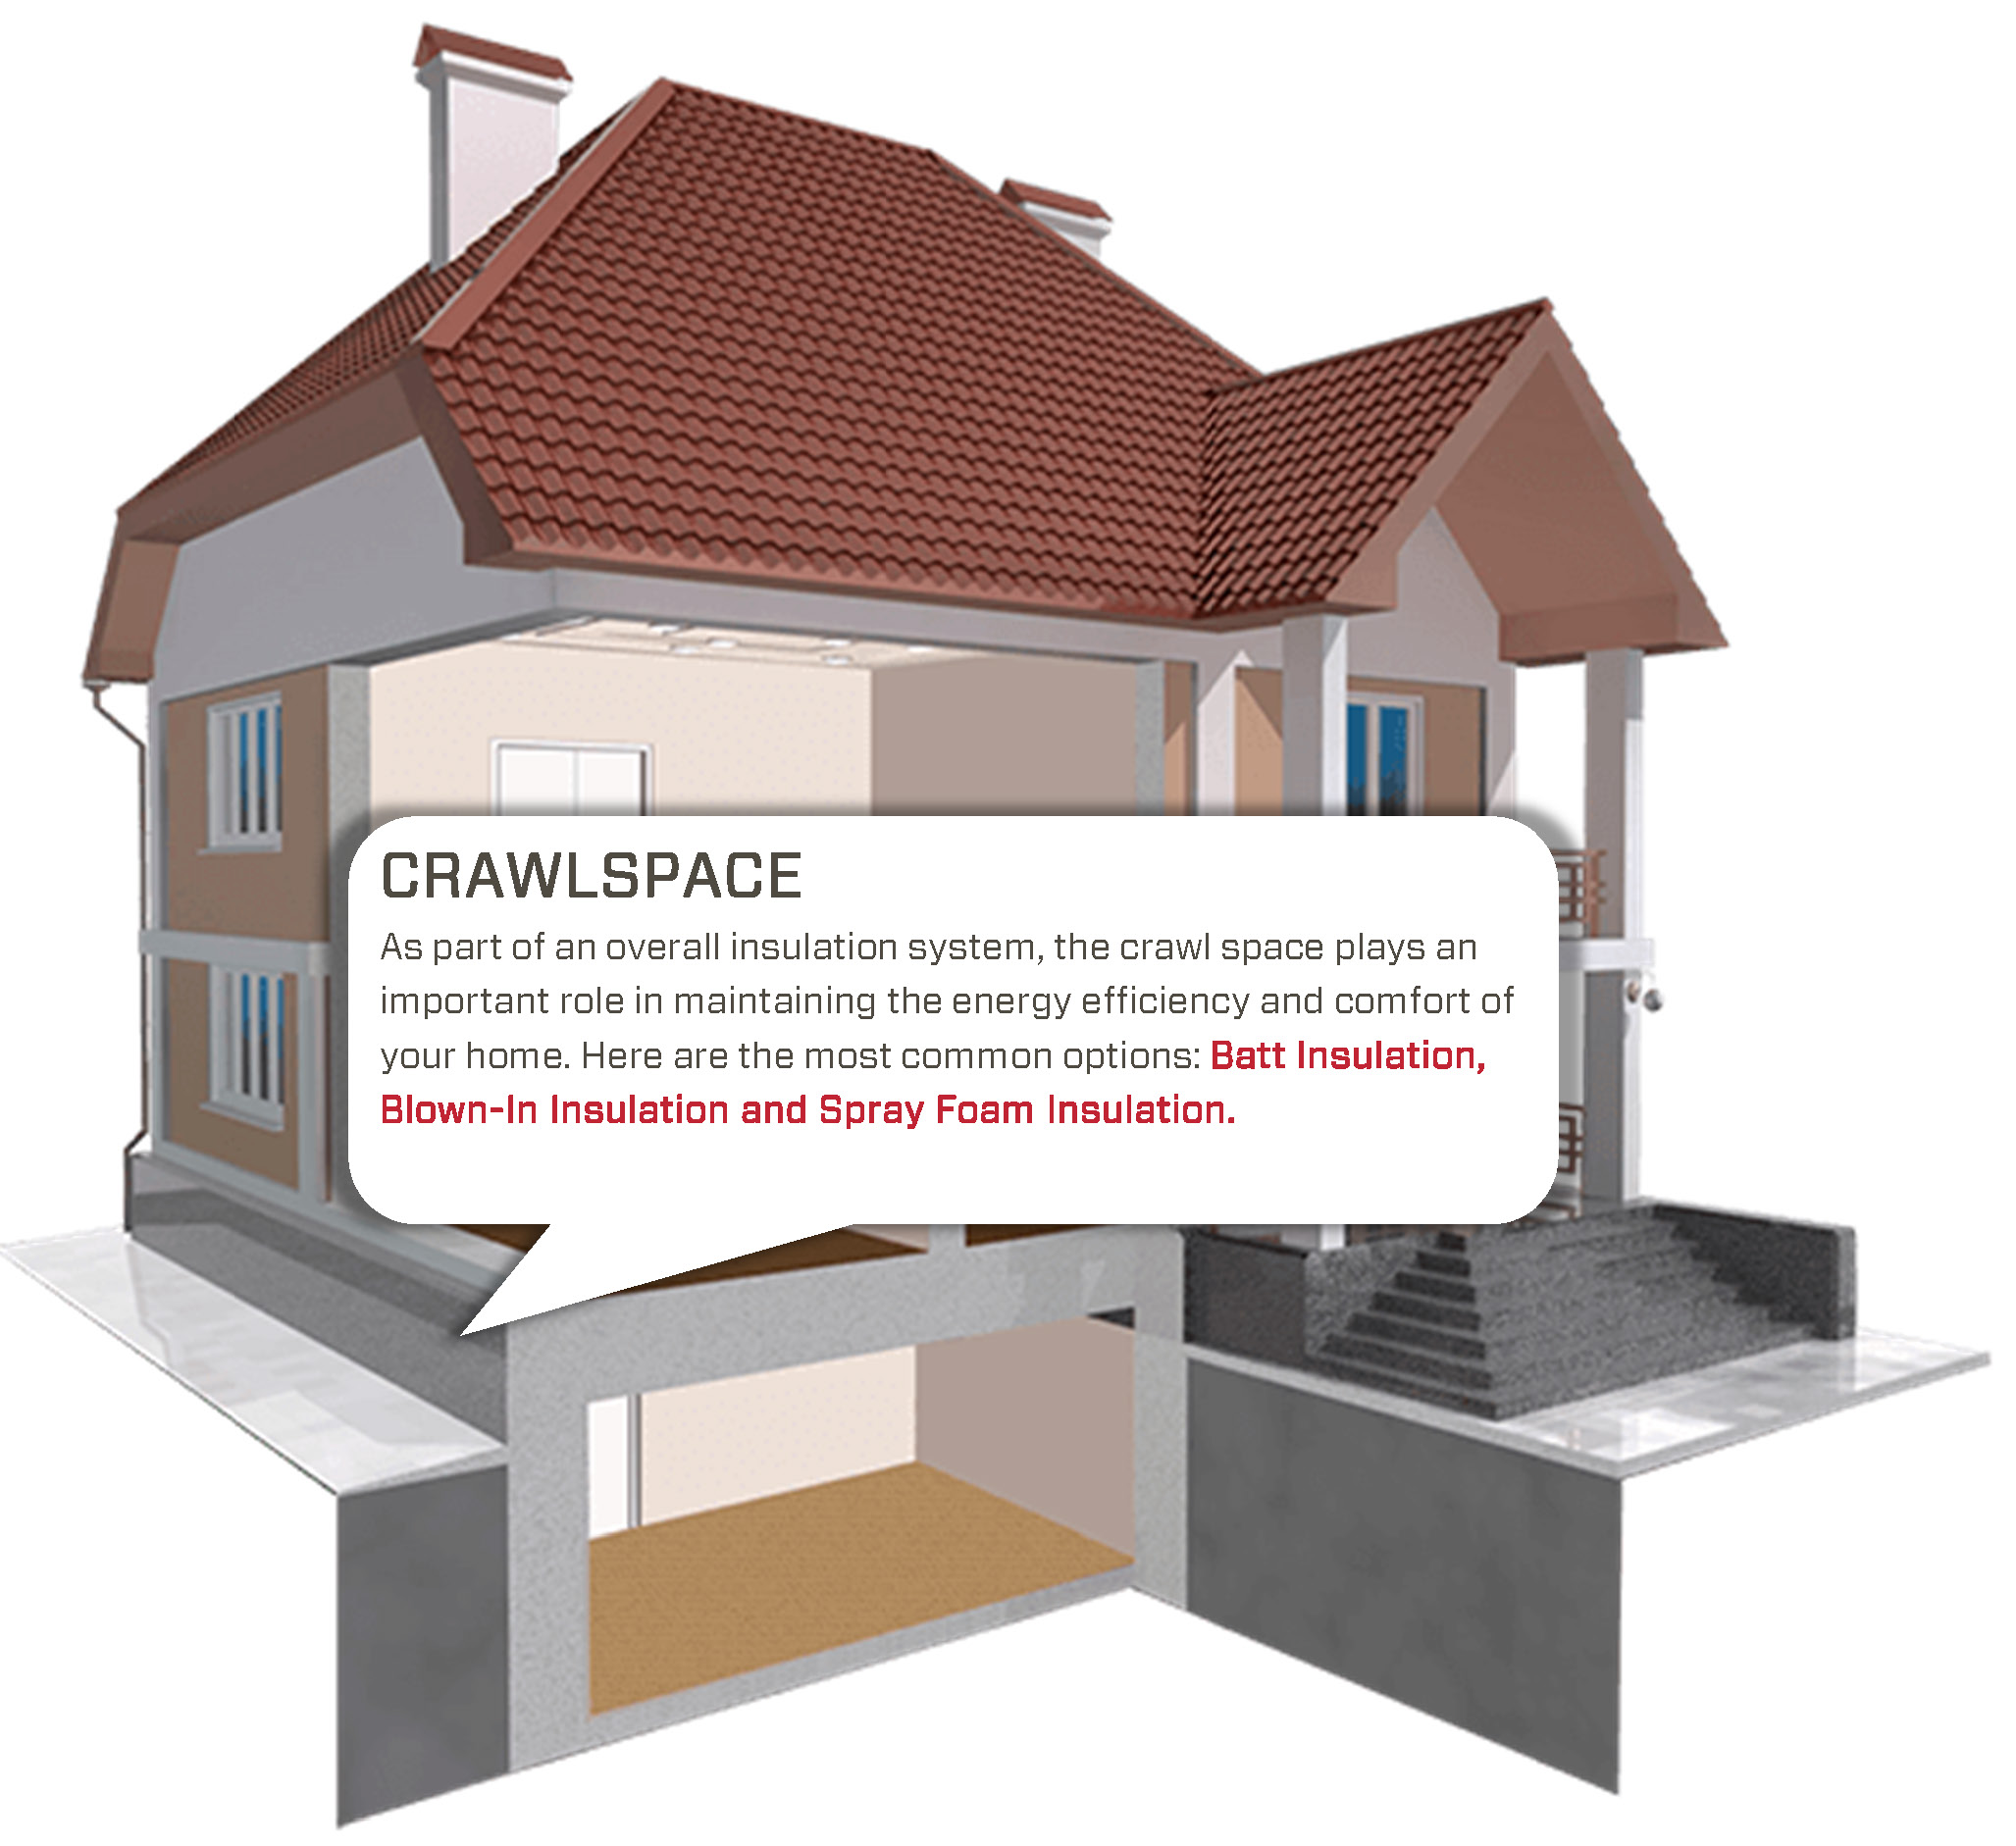 Home restoration resources guide insulation usi building solutions there are different reasons for and benefits of insulating each area you can get a better understanding of each by looking at each of these home models solutioingenieria Image collections